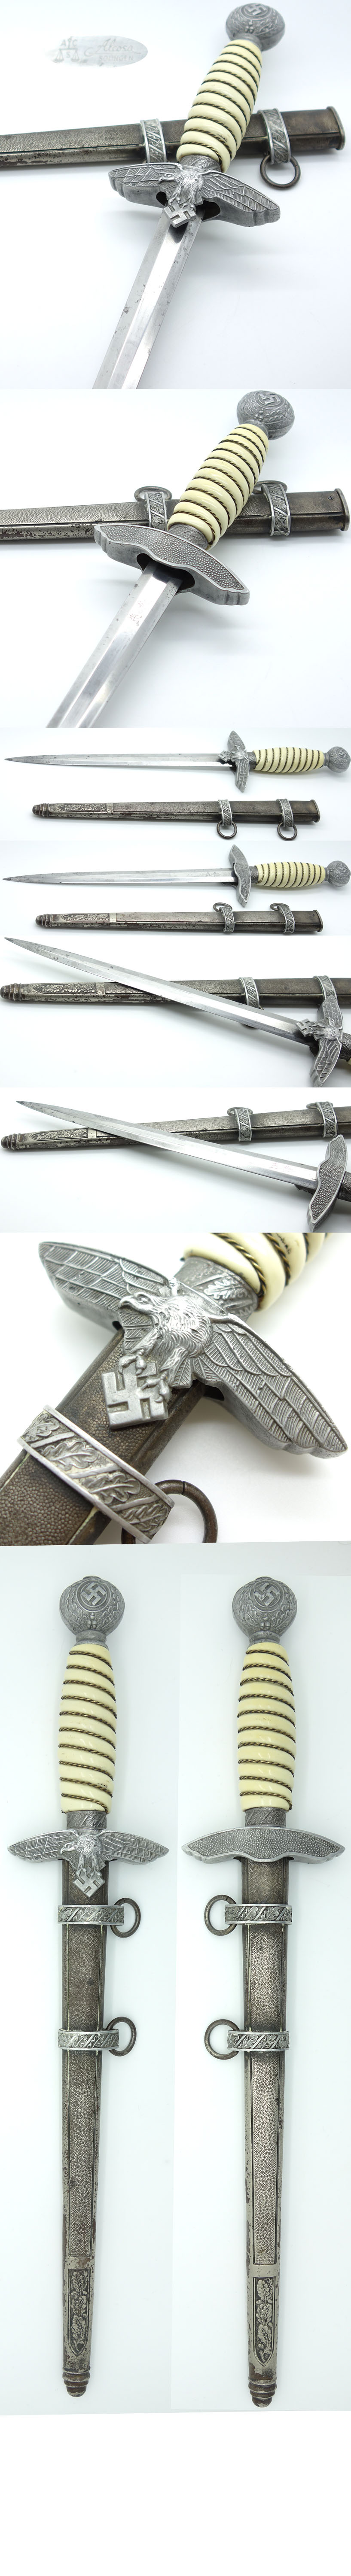 Alcoso 2nd Model Luftwaffe Dagger